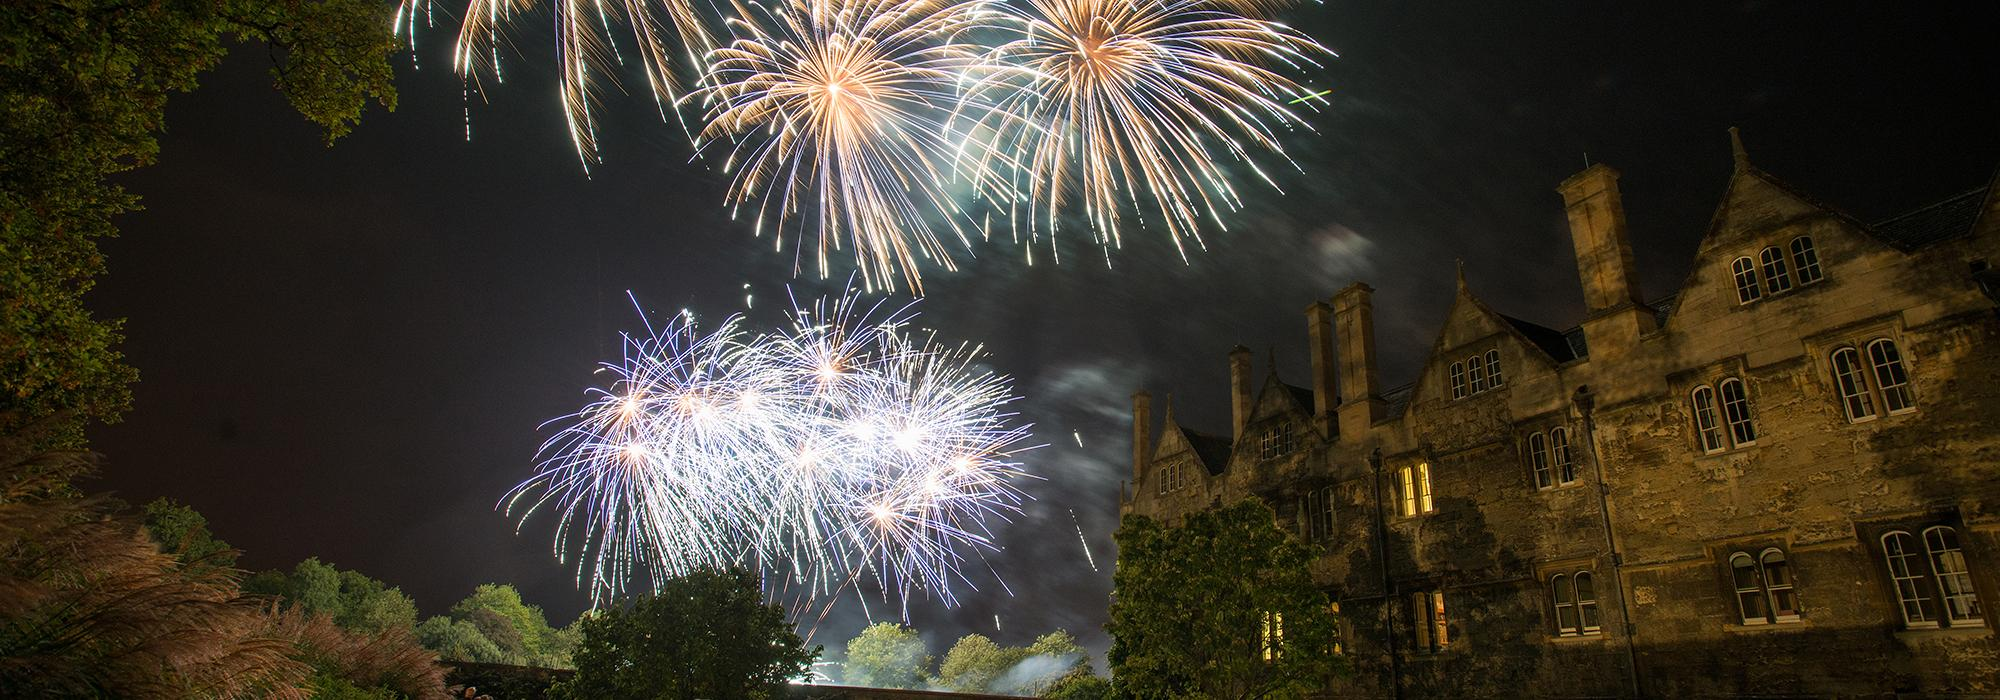 Fireworks burst over Fellows' Garden during the 750th Anniversary weekend, September 2014 - Photo: © John Cairns - www.johncairns.co.uk